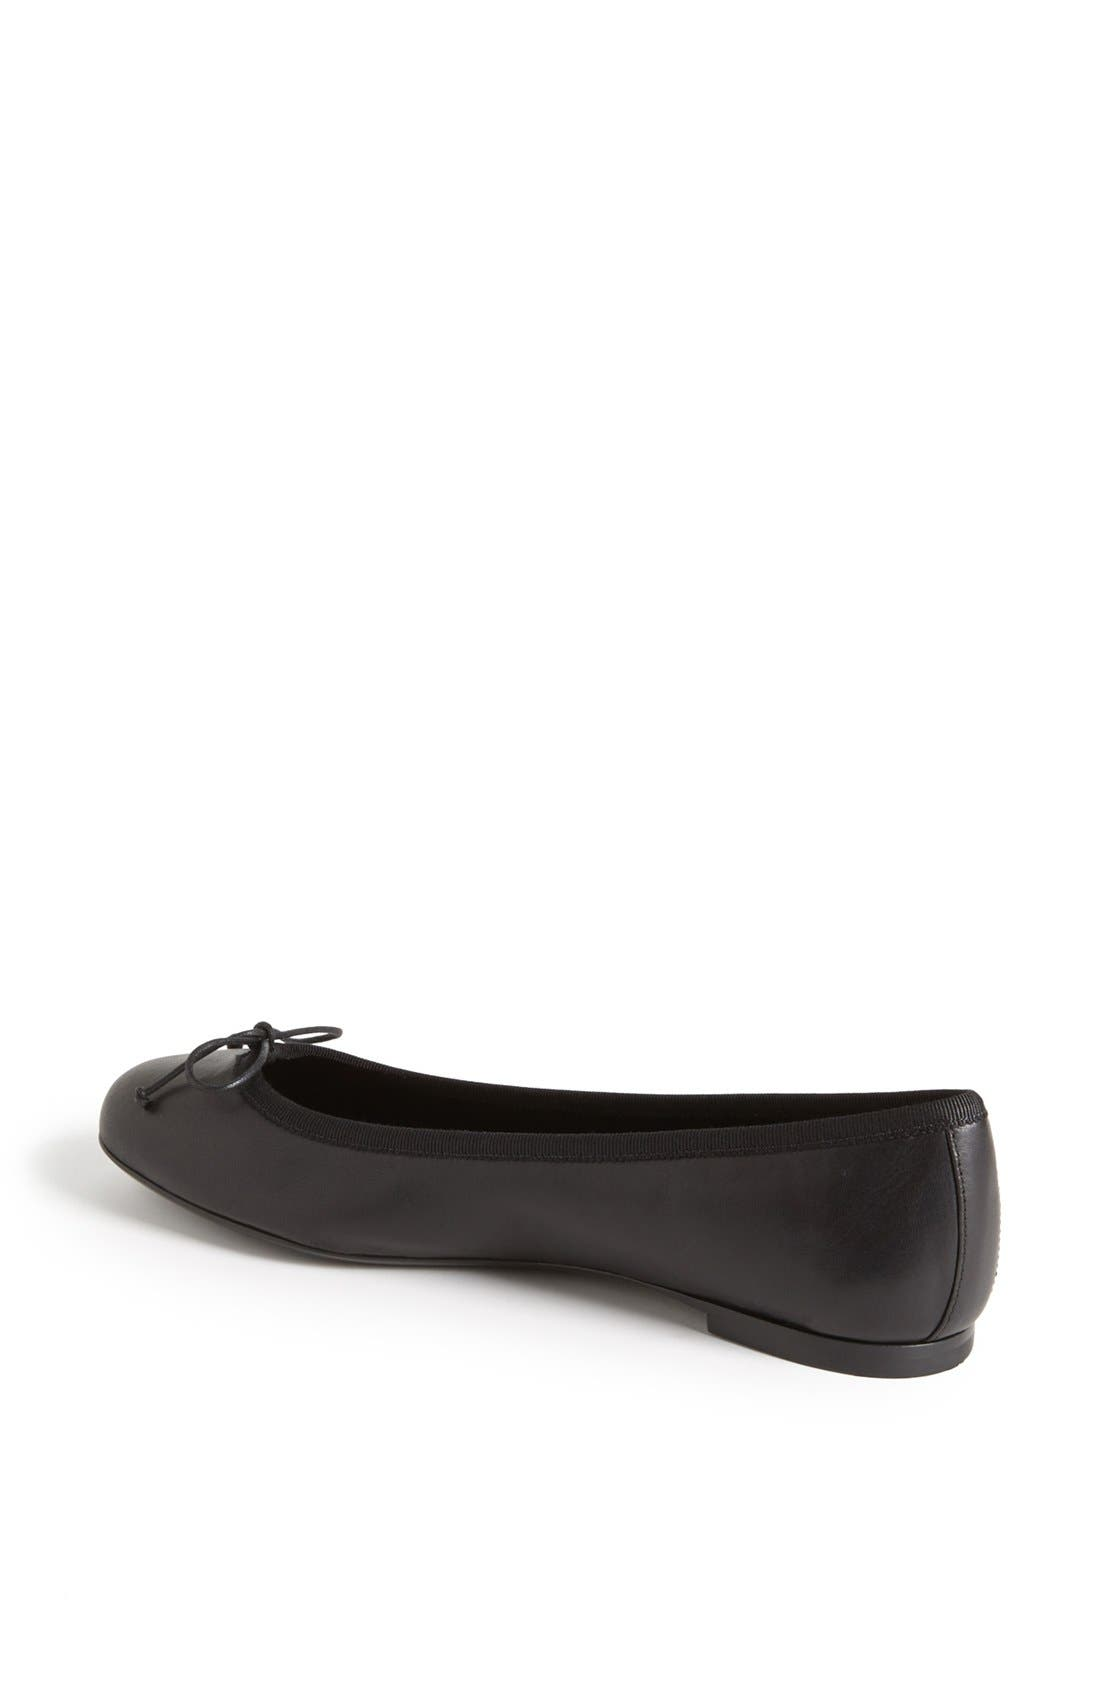 Alternate Image 2  - Saint Laurent 'Dance' Leather Ballet Flat